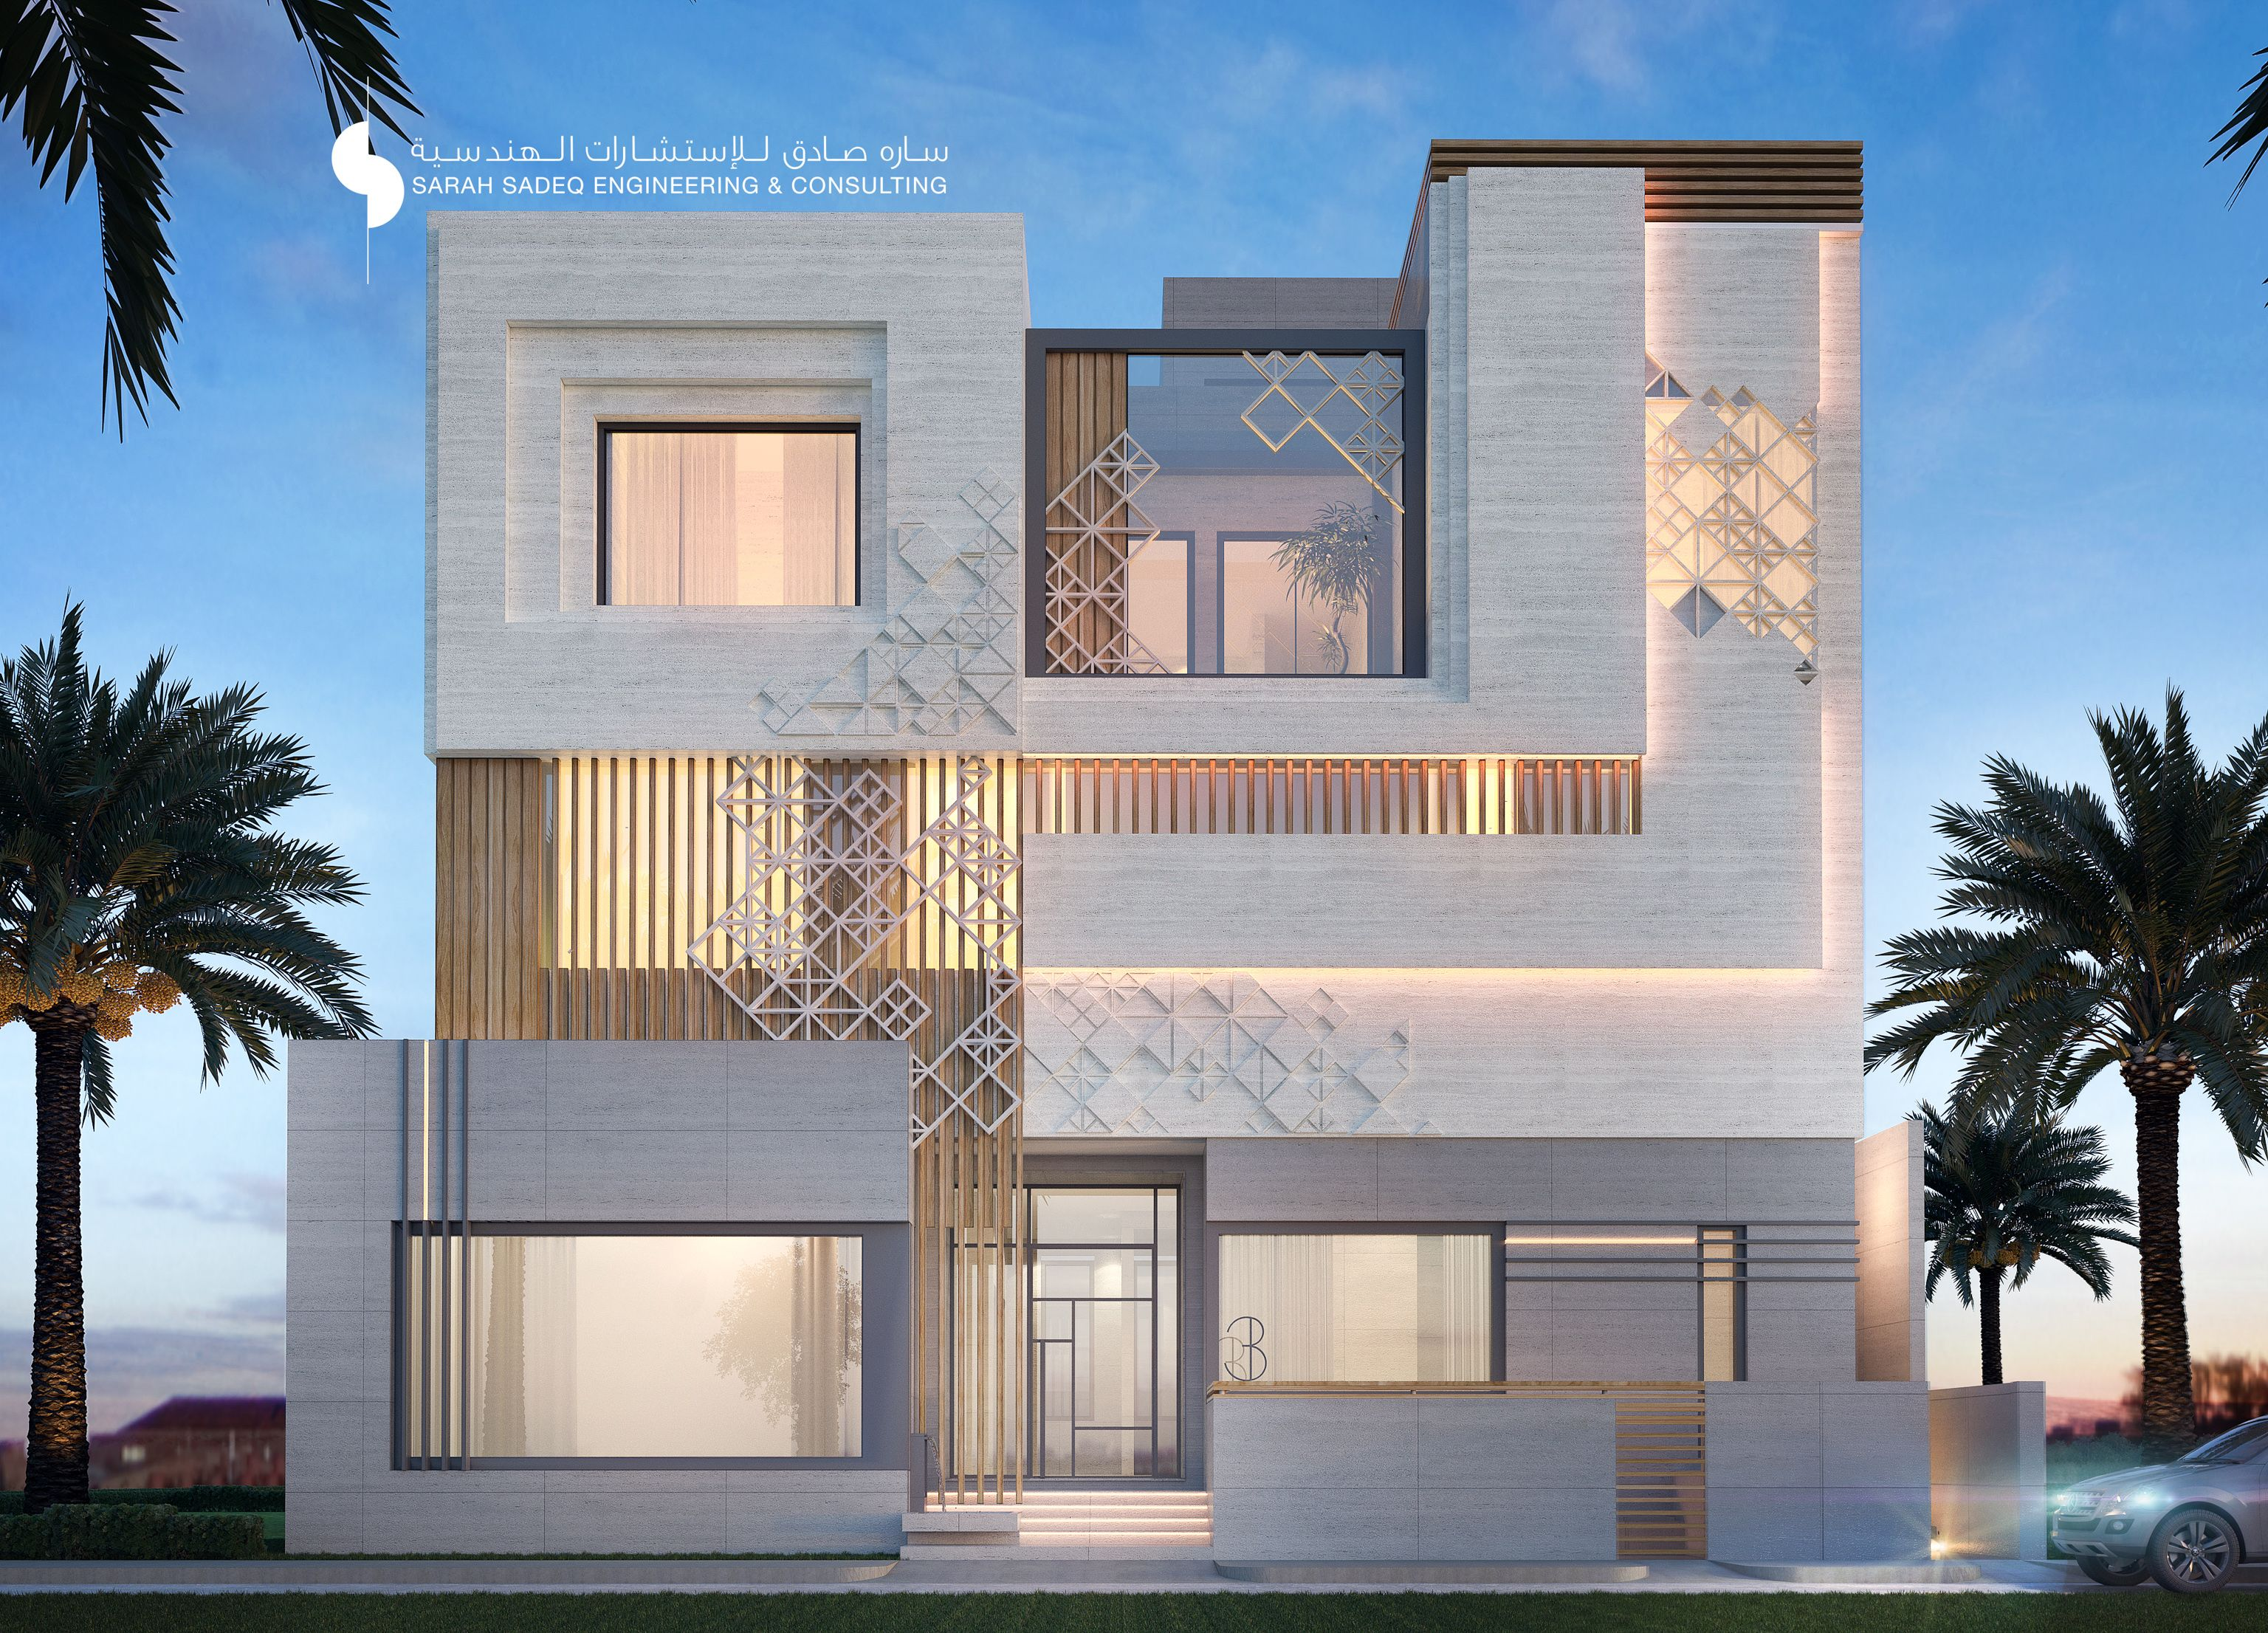 Private villa kuwait 400 m by sarah sadeq architects for Architecture villa design